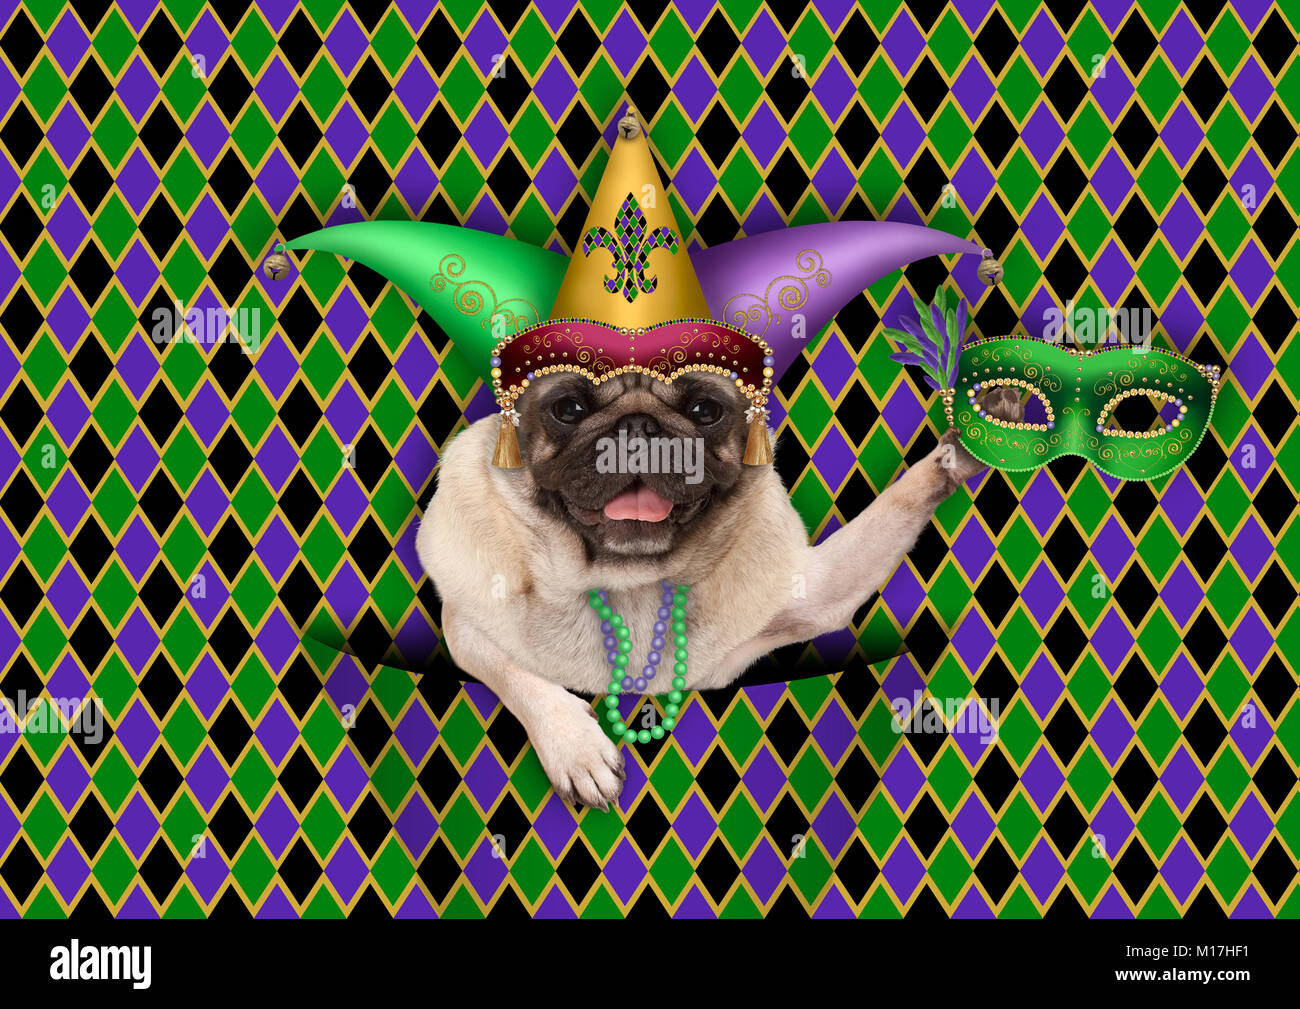 checkered mardi gras, fat tuesday, background, with harlequin pug dog holding venetian mask, wearing harlequin jester - Stock Image